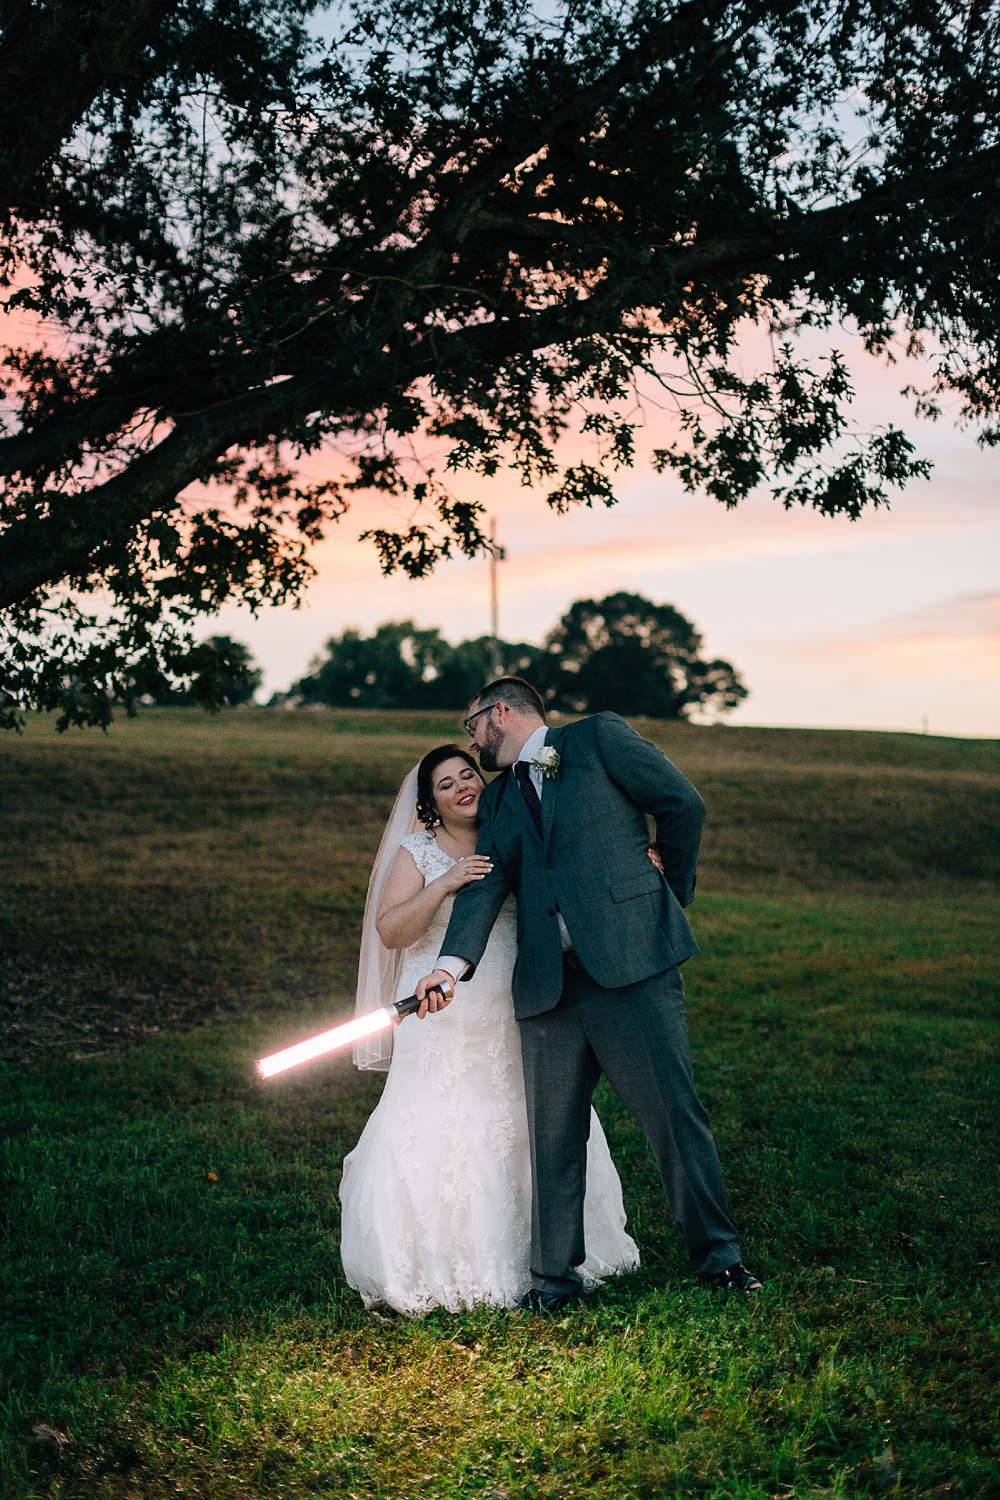 star wars wedding portrait with bride and groom by rachael bowman photography